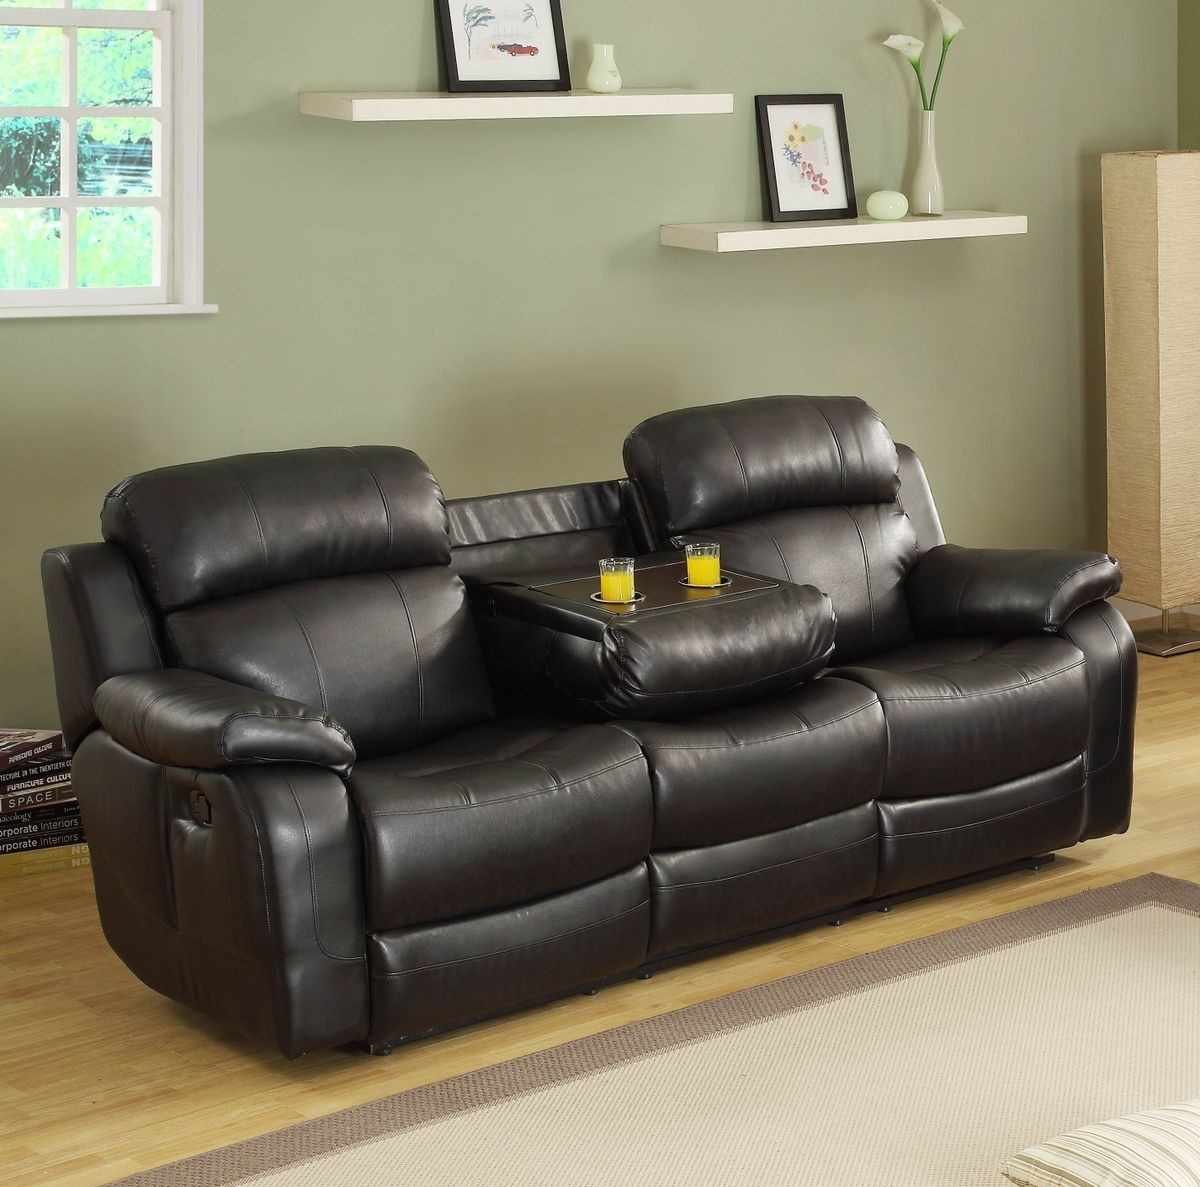 Homelegance marille double reclining sofa w center drop down cup holders in black leather Reclining loveseat with center console